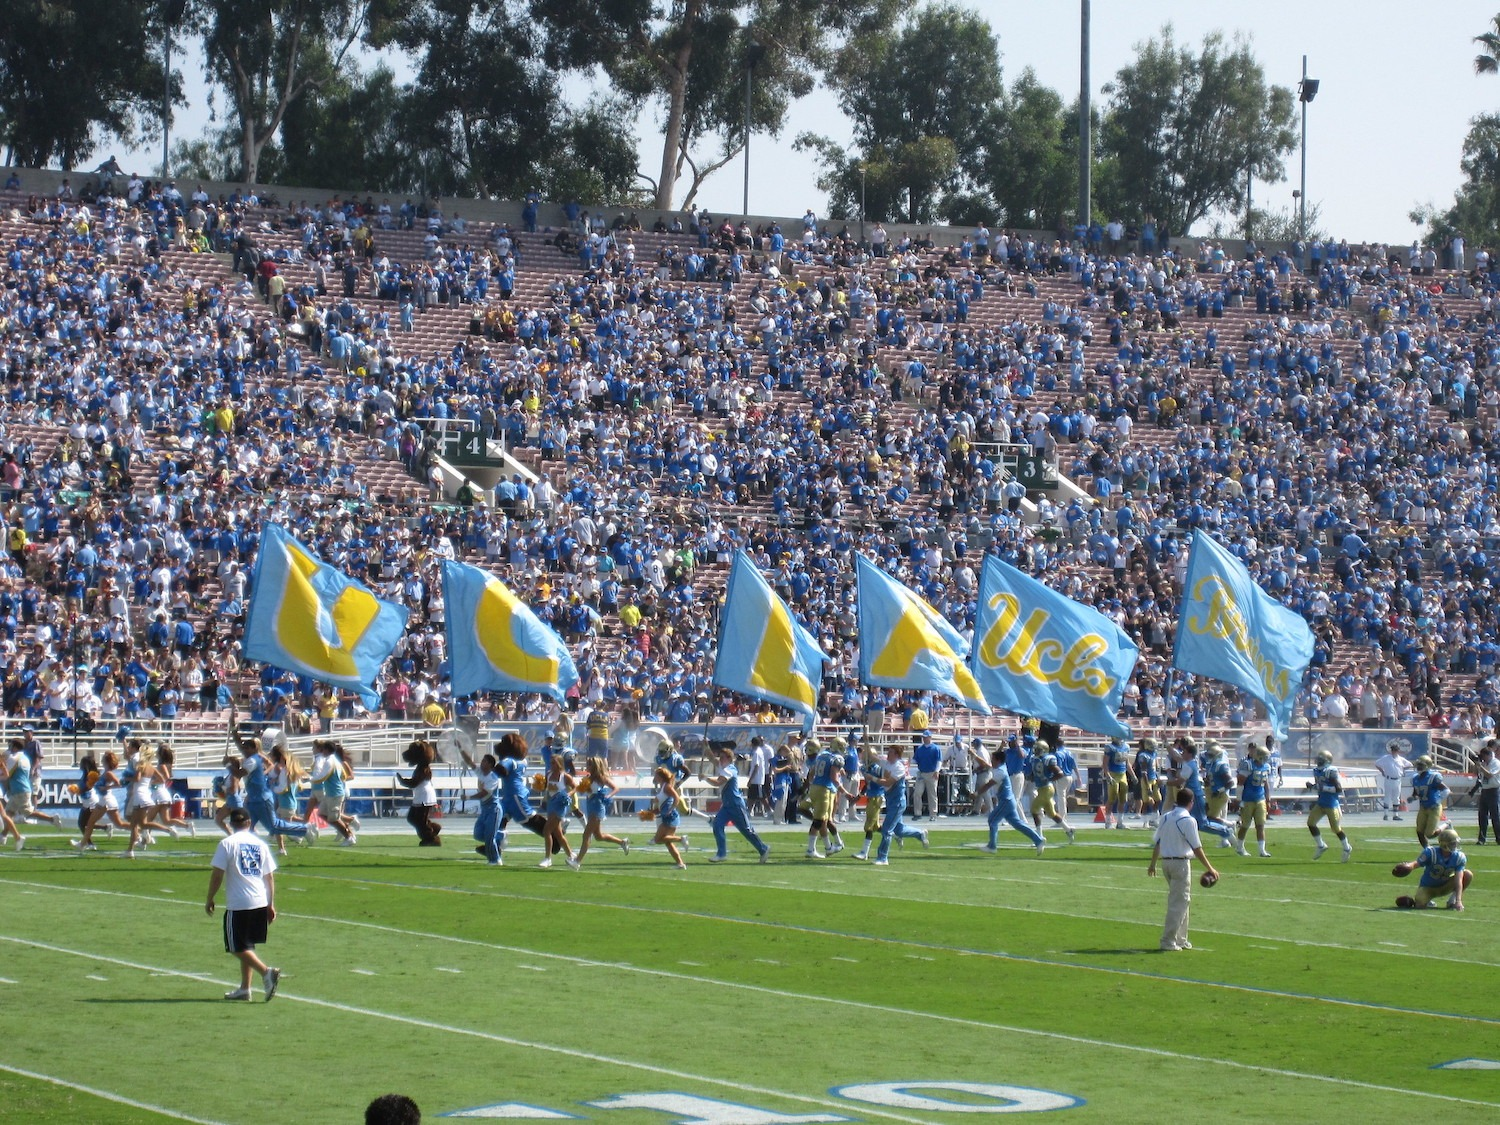 Can UCLA Take Down Colorado To Make It Three Wins In A Row?